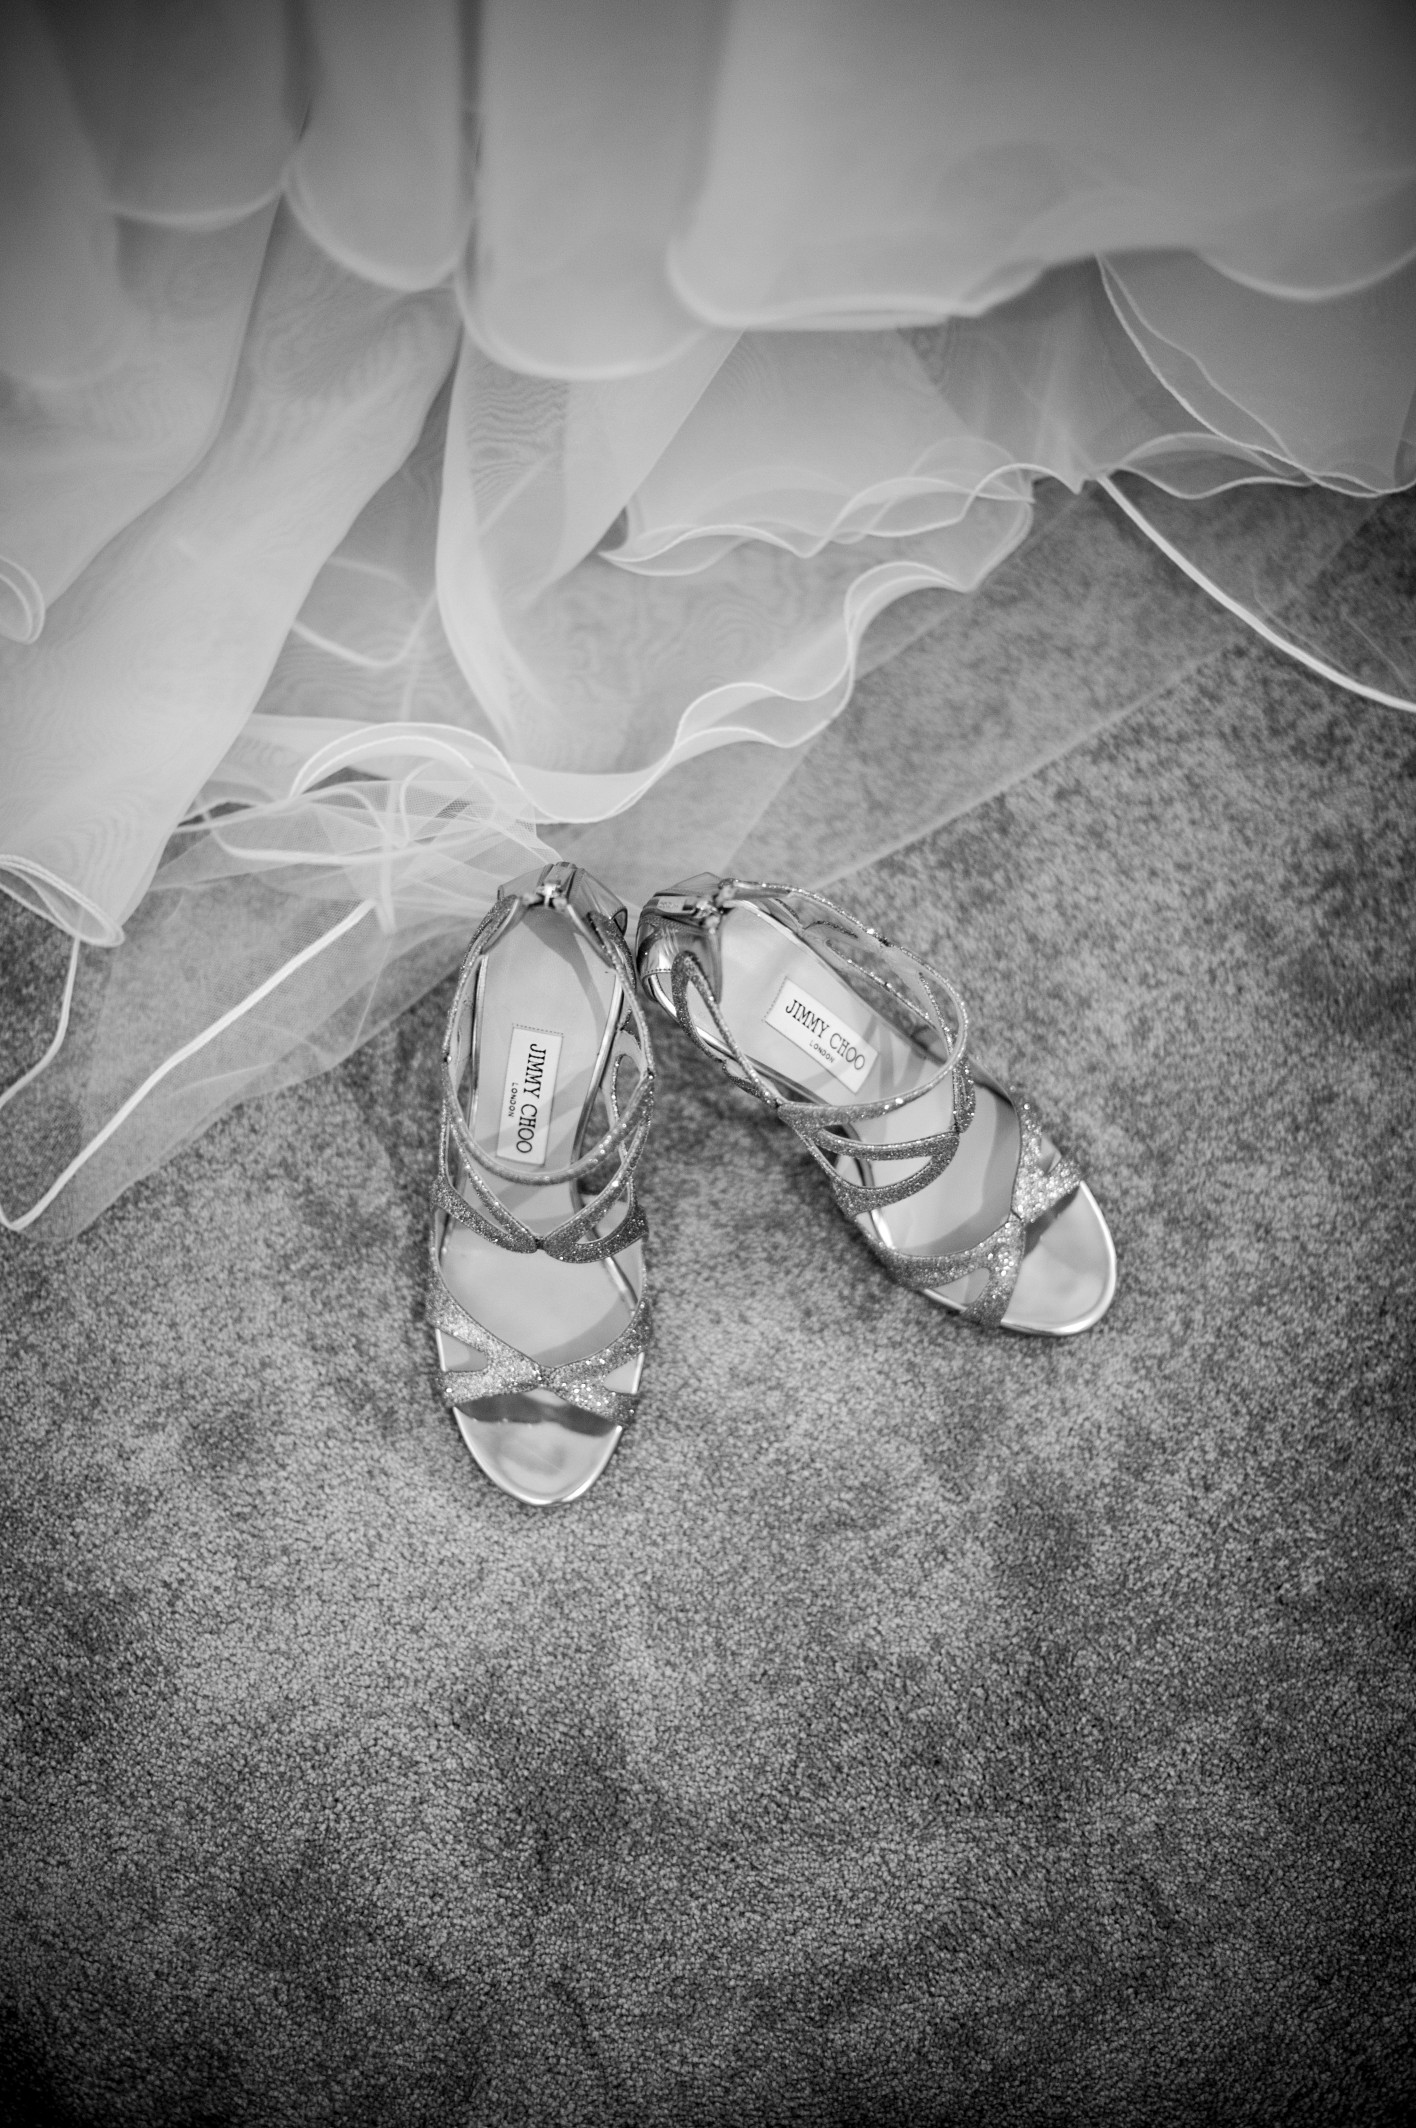 Wedding photography at Farnham Castle in Surrey - the wedding shoes